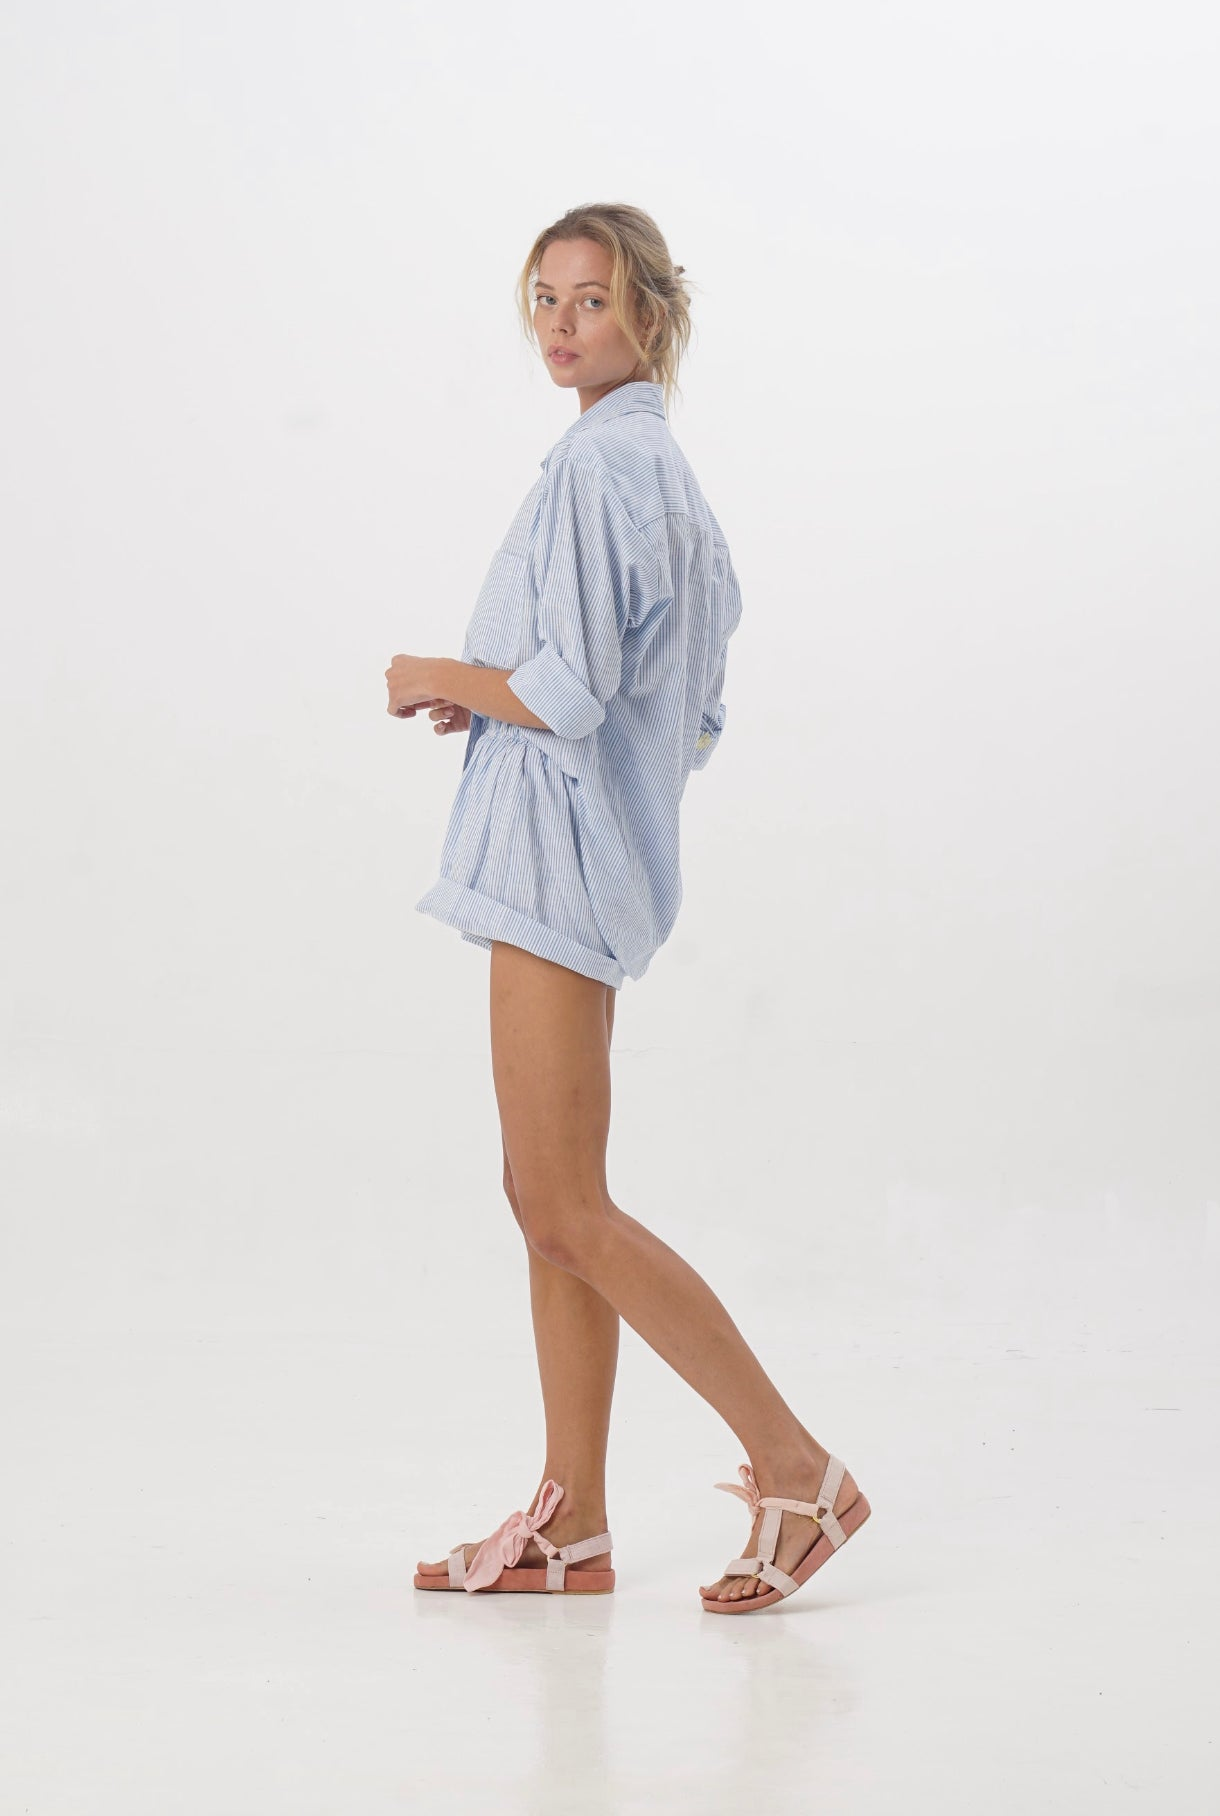 ÉSS THE LABEL Paloma Collared Linen Shirt - Stripe